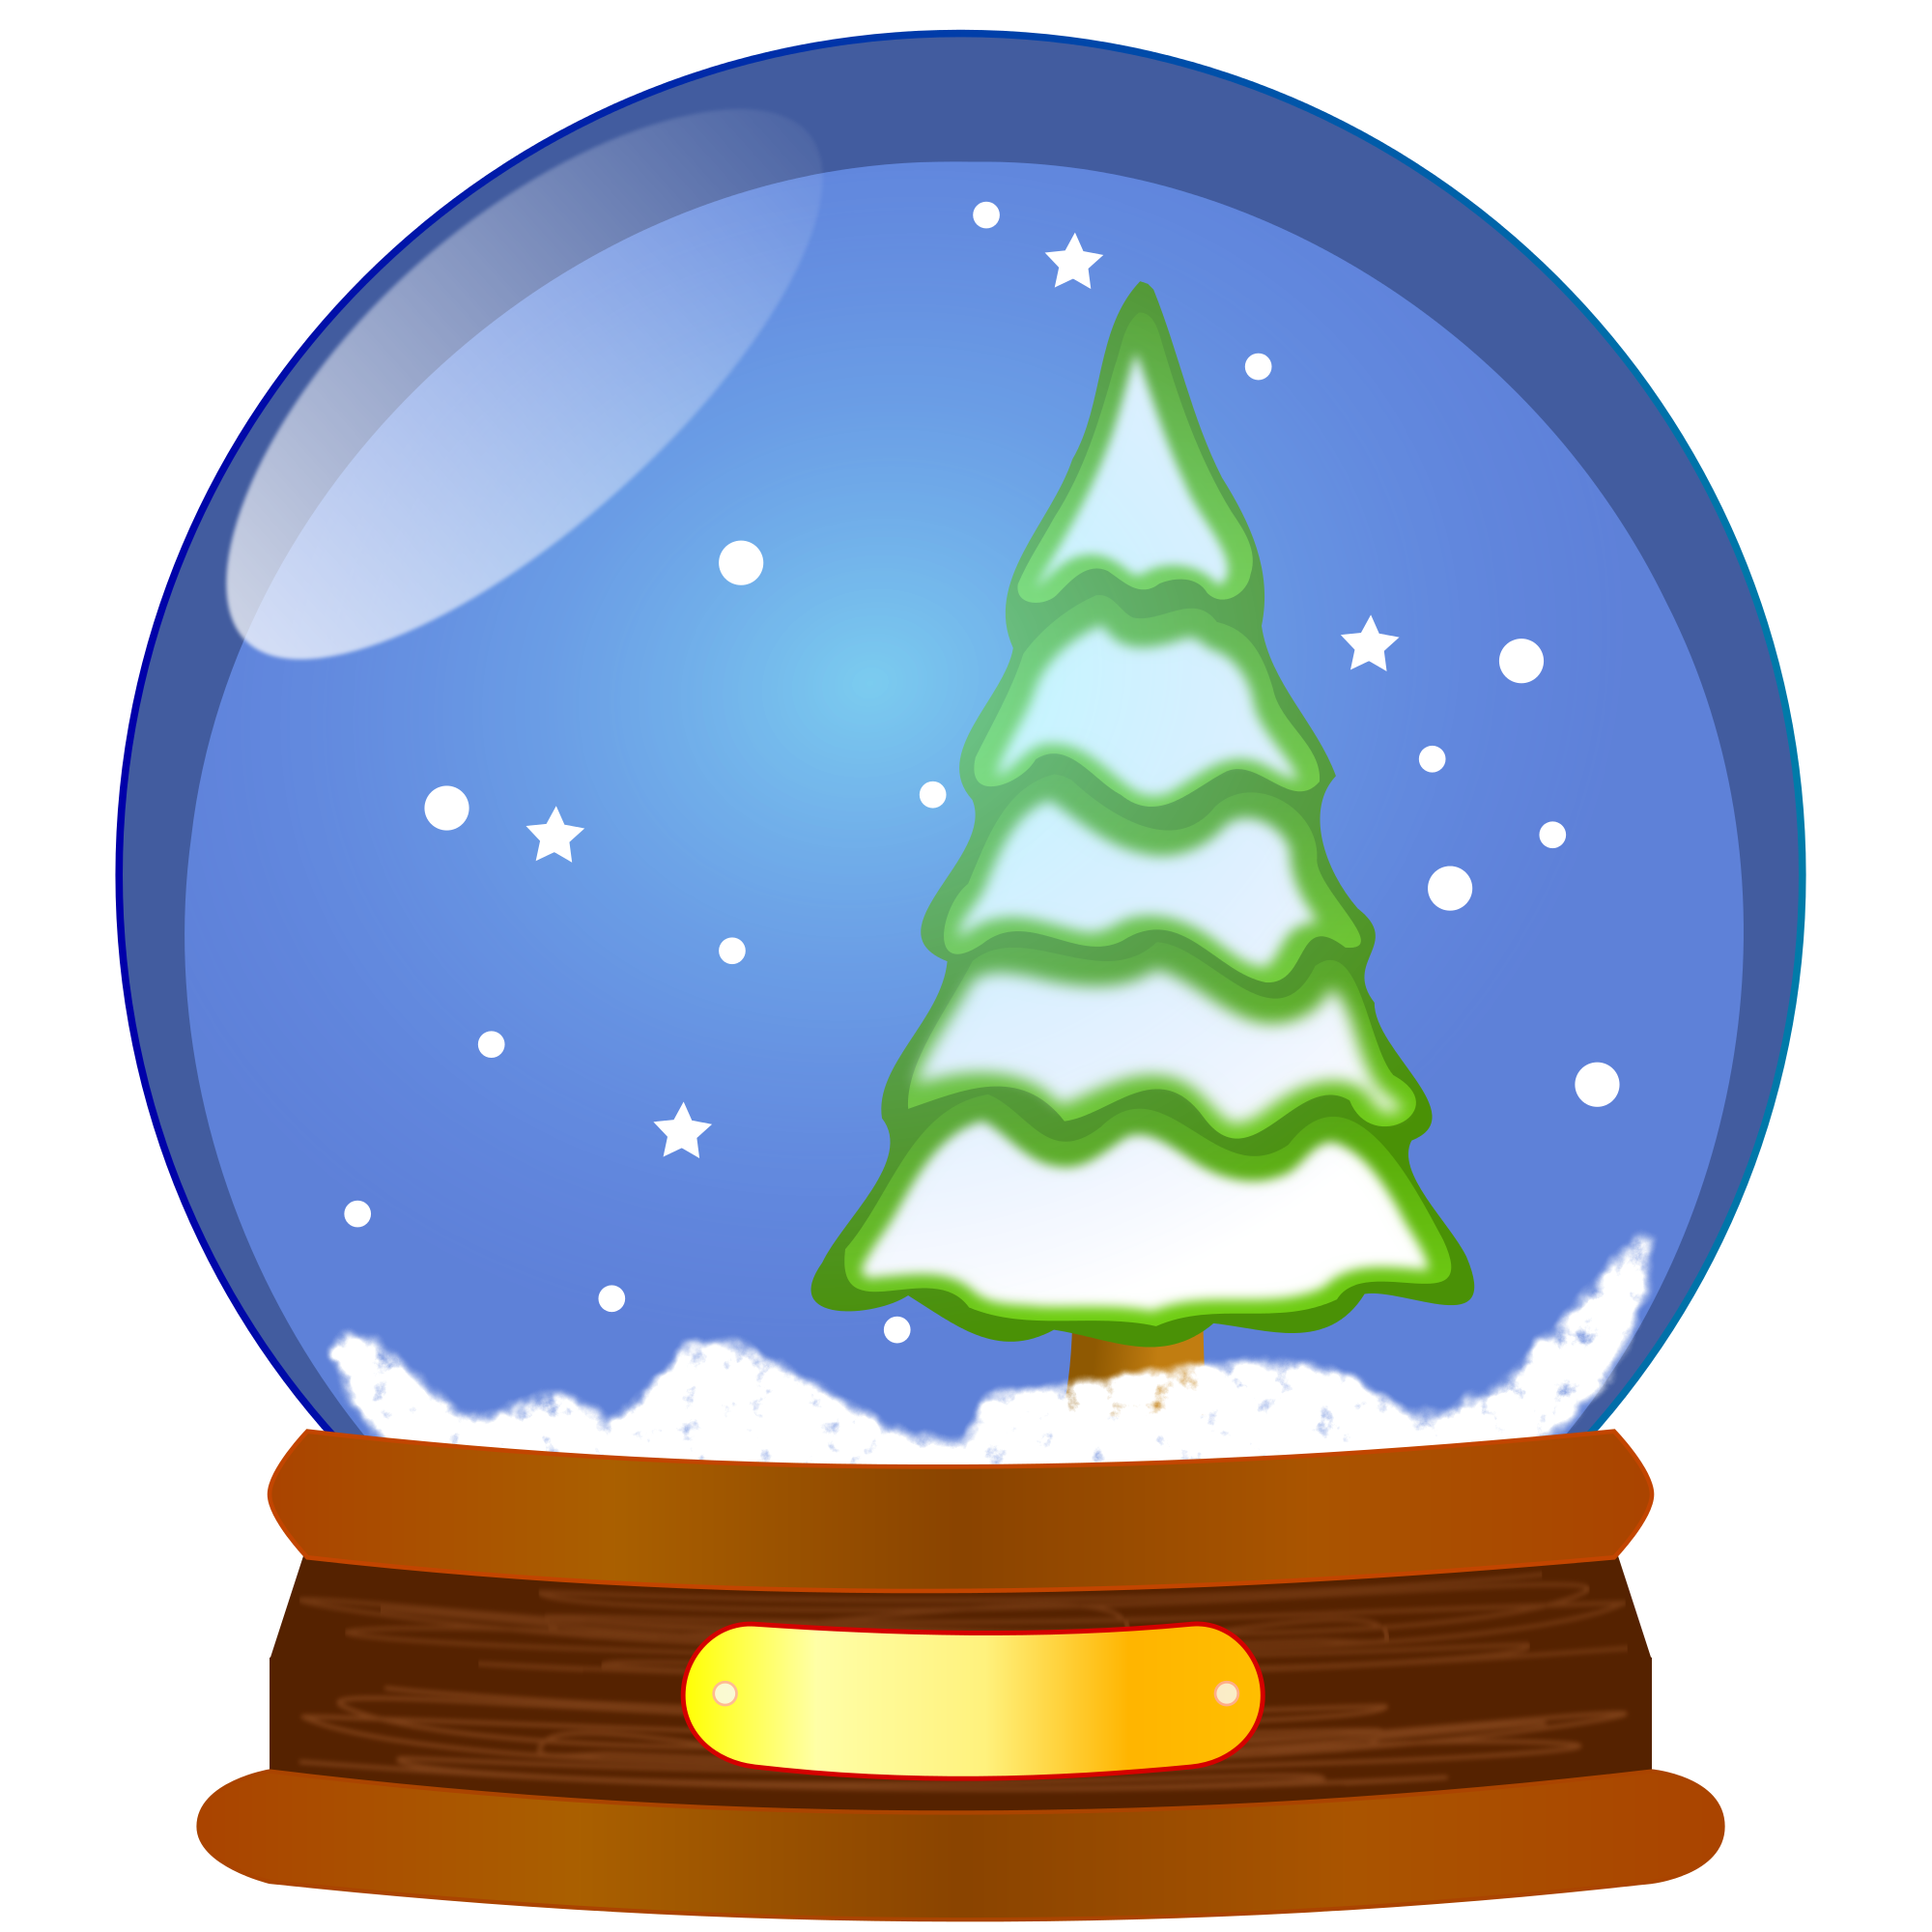 Volunteering clipart public meeting. File snow globe svg